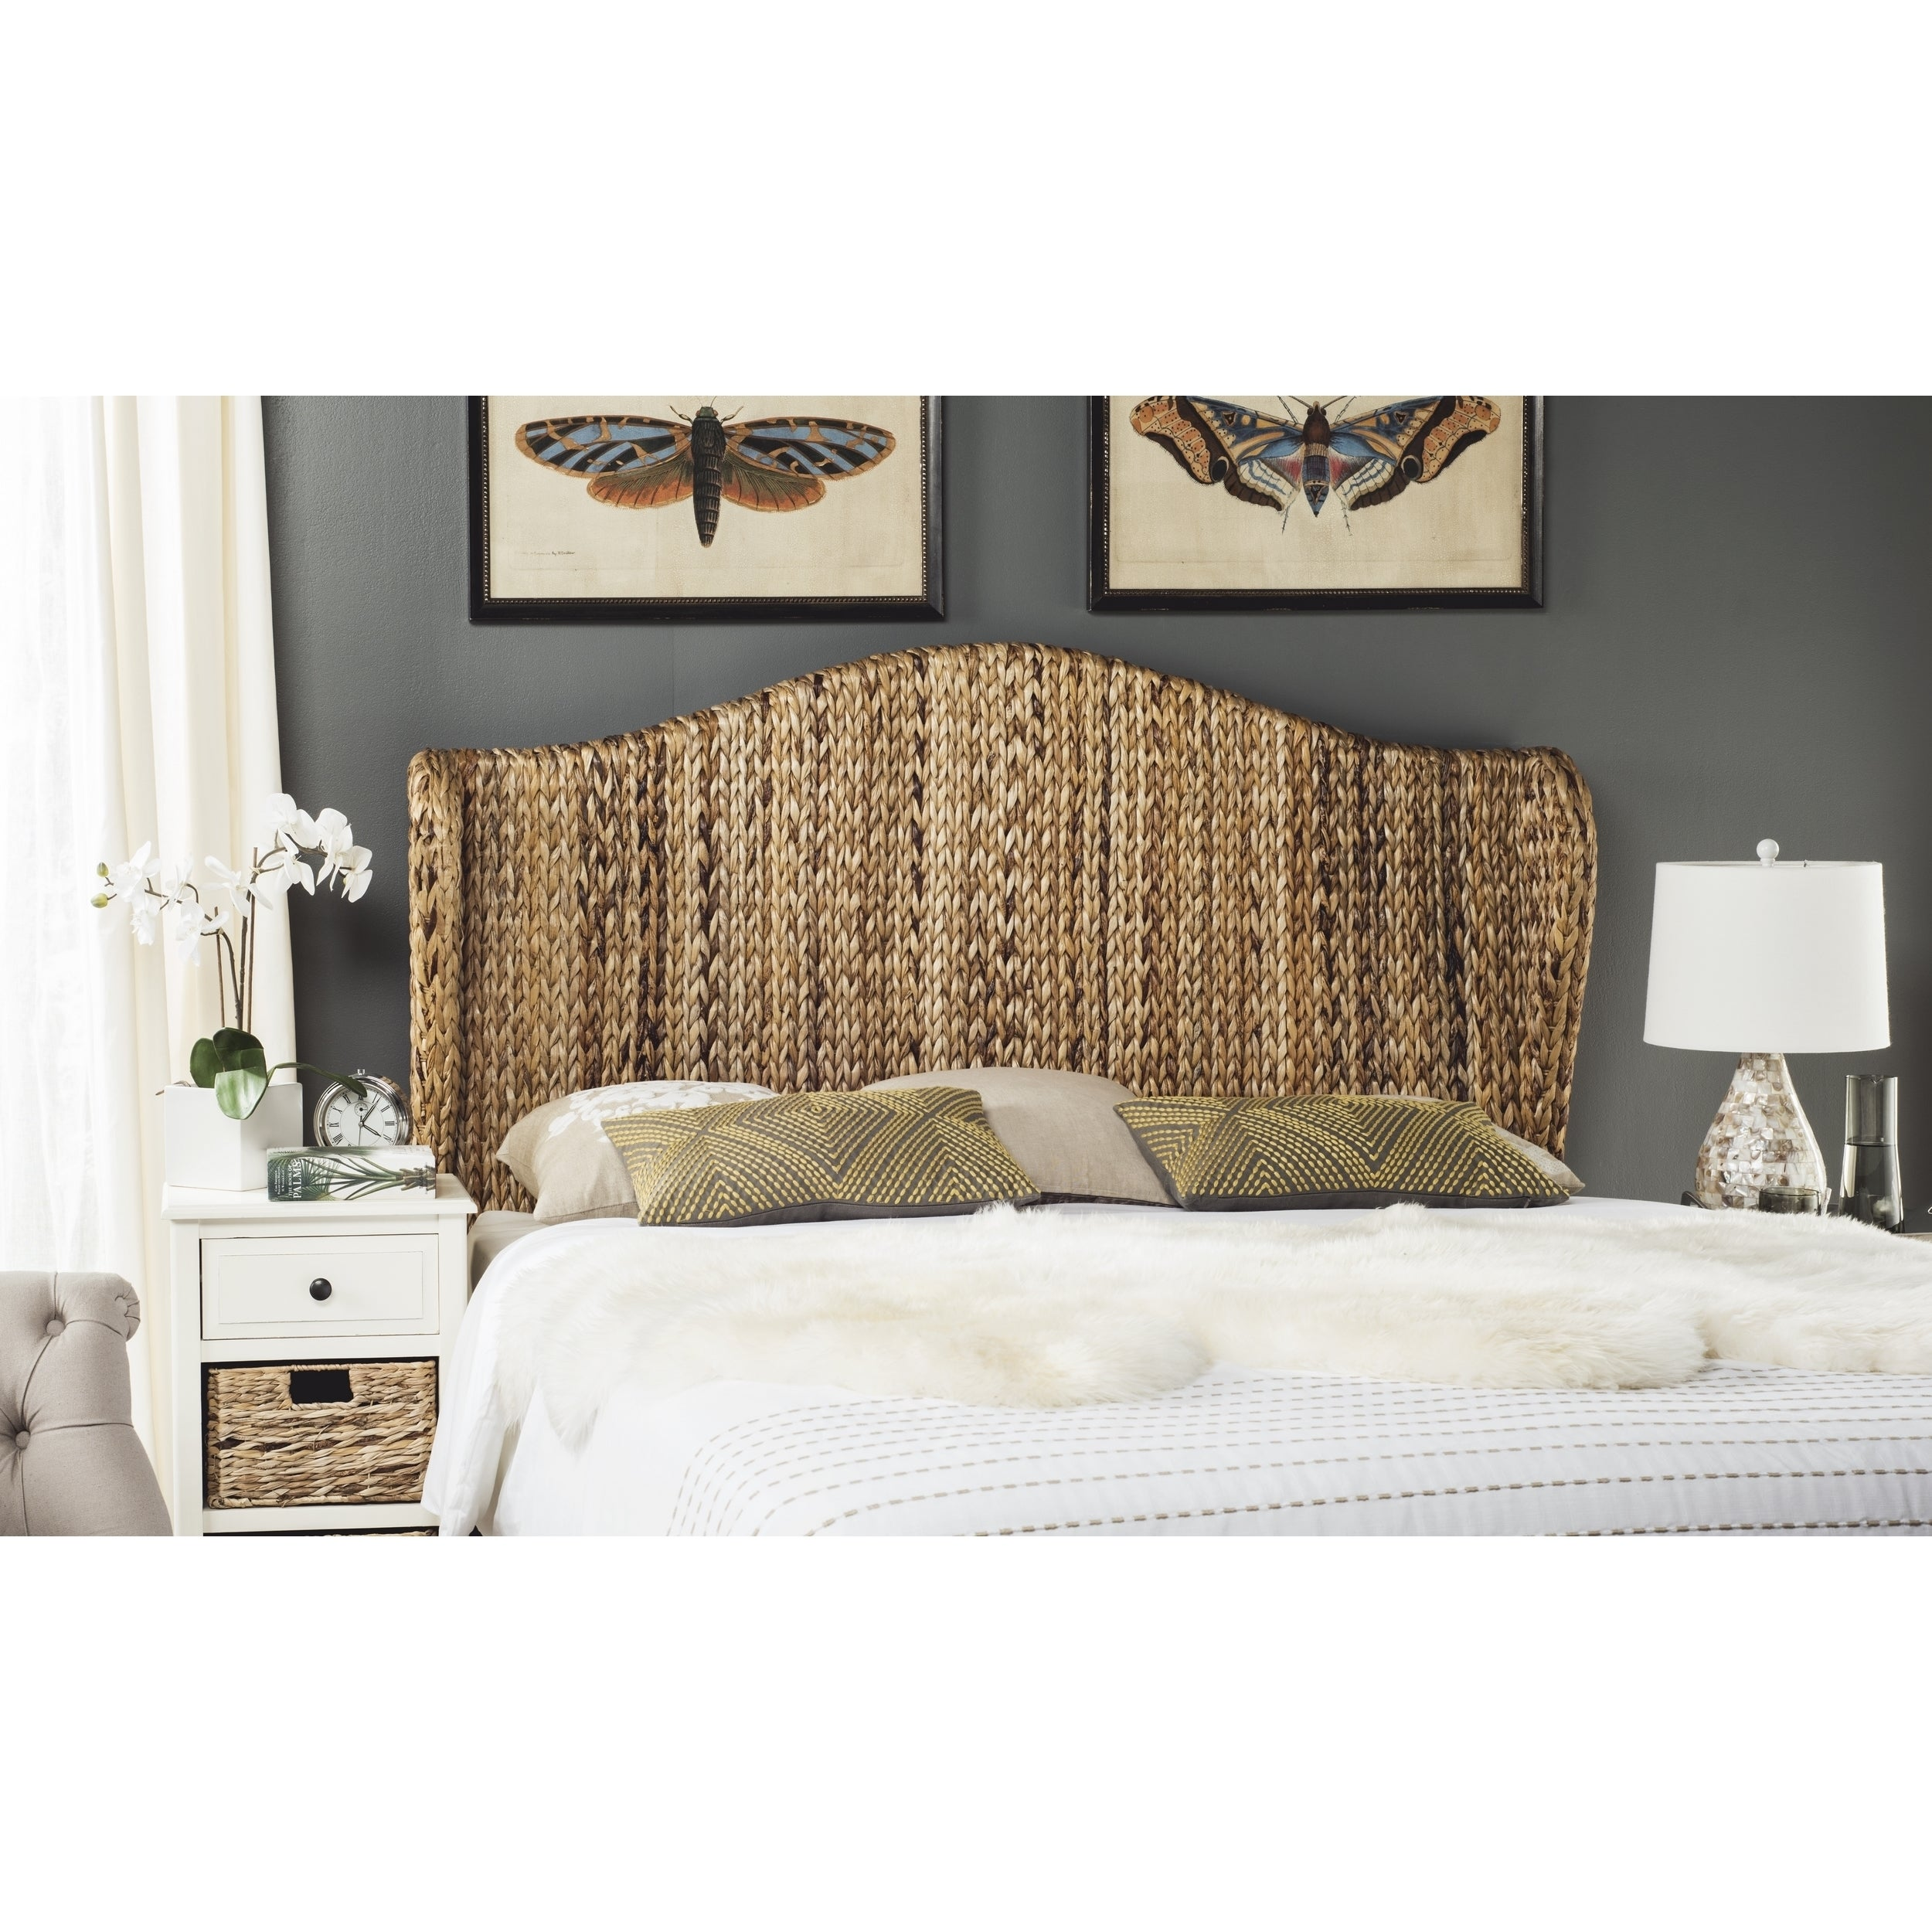 Shop Safavieh Nadine Natural Woven Wingback Headboard (Queen) - On ...